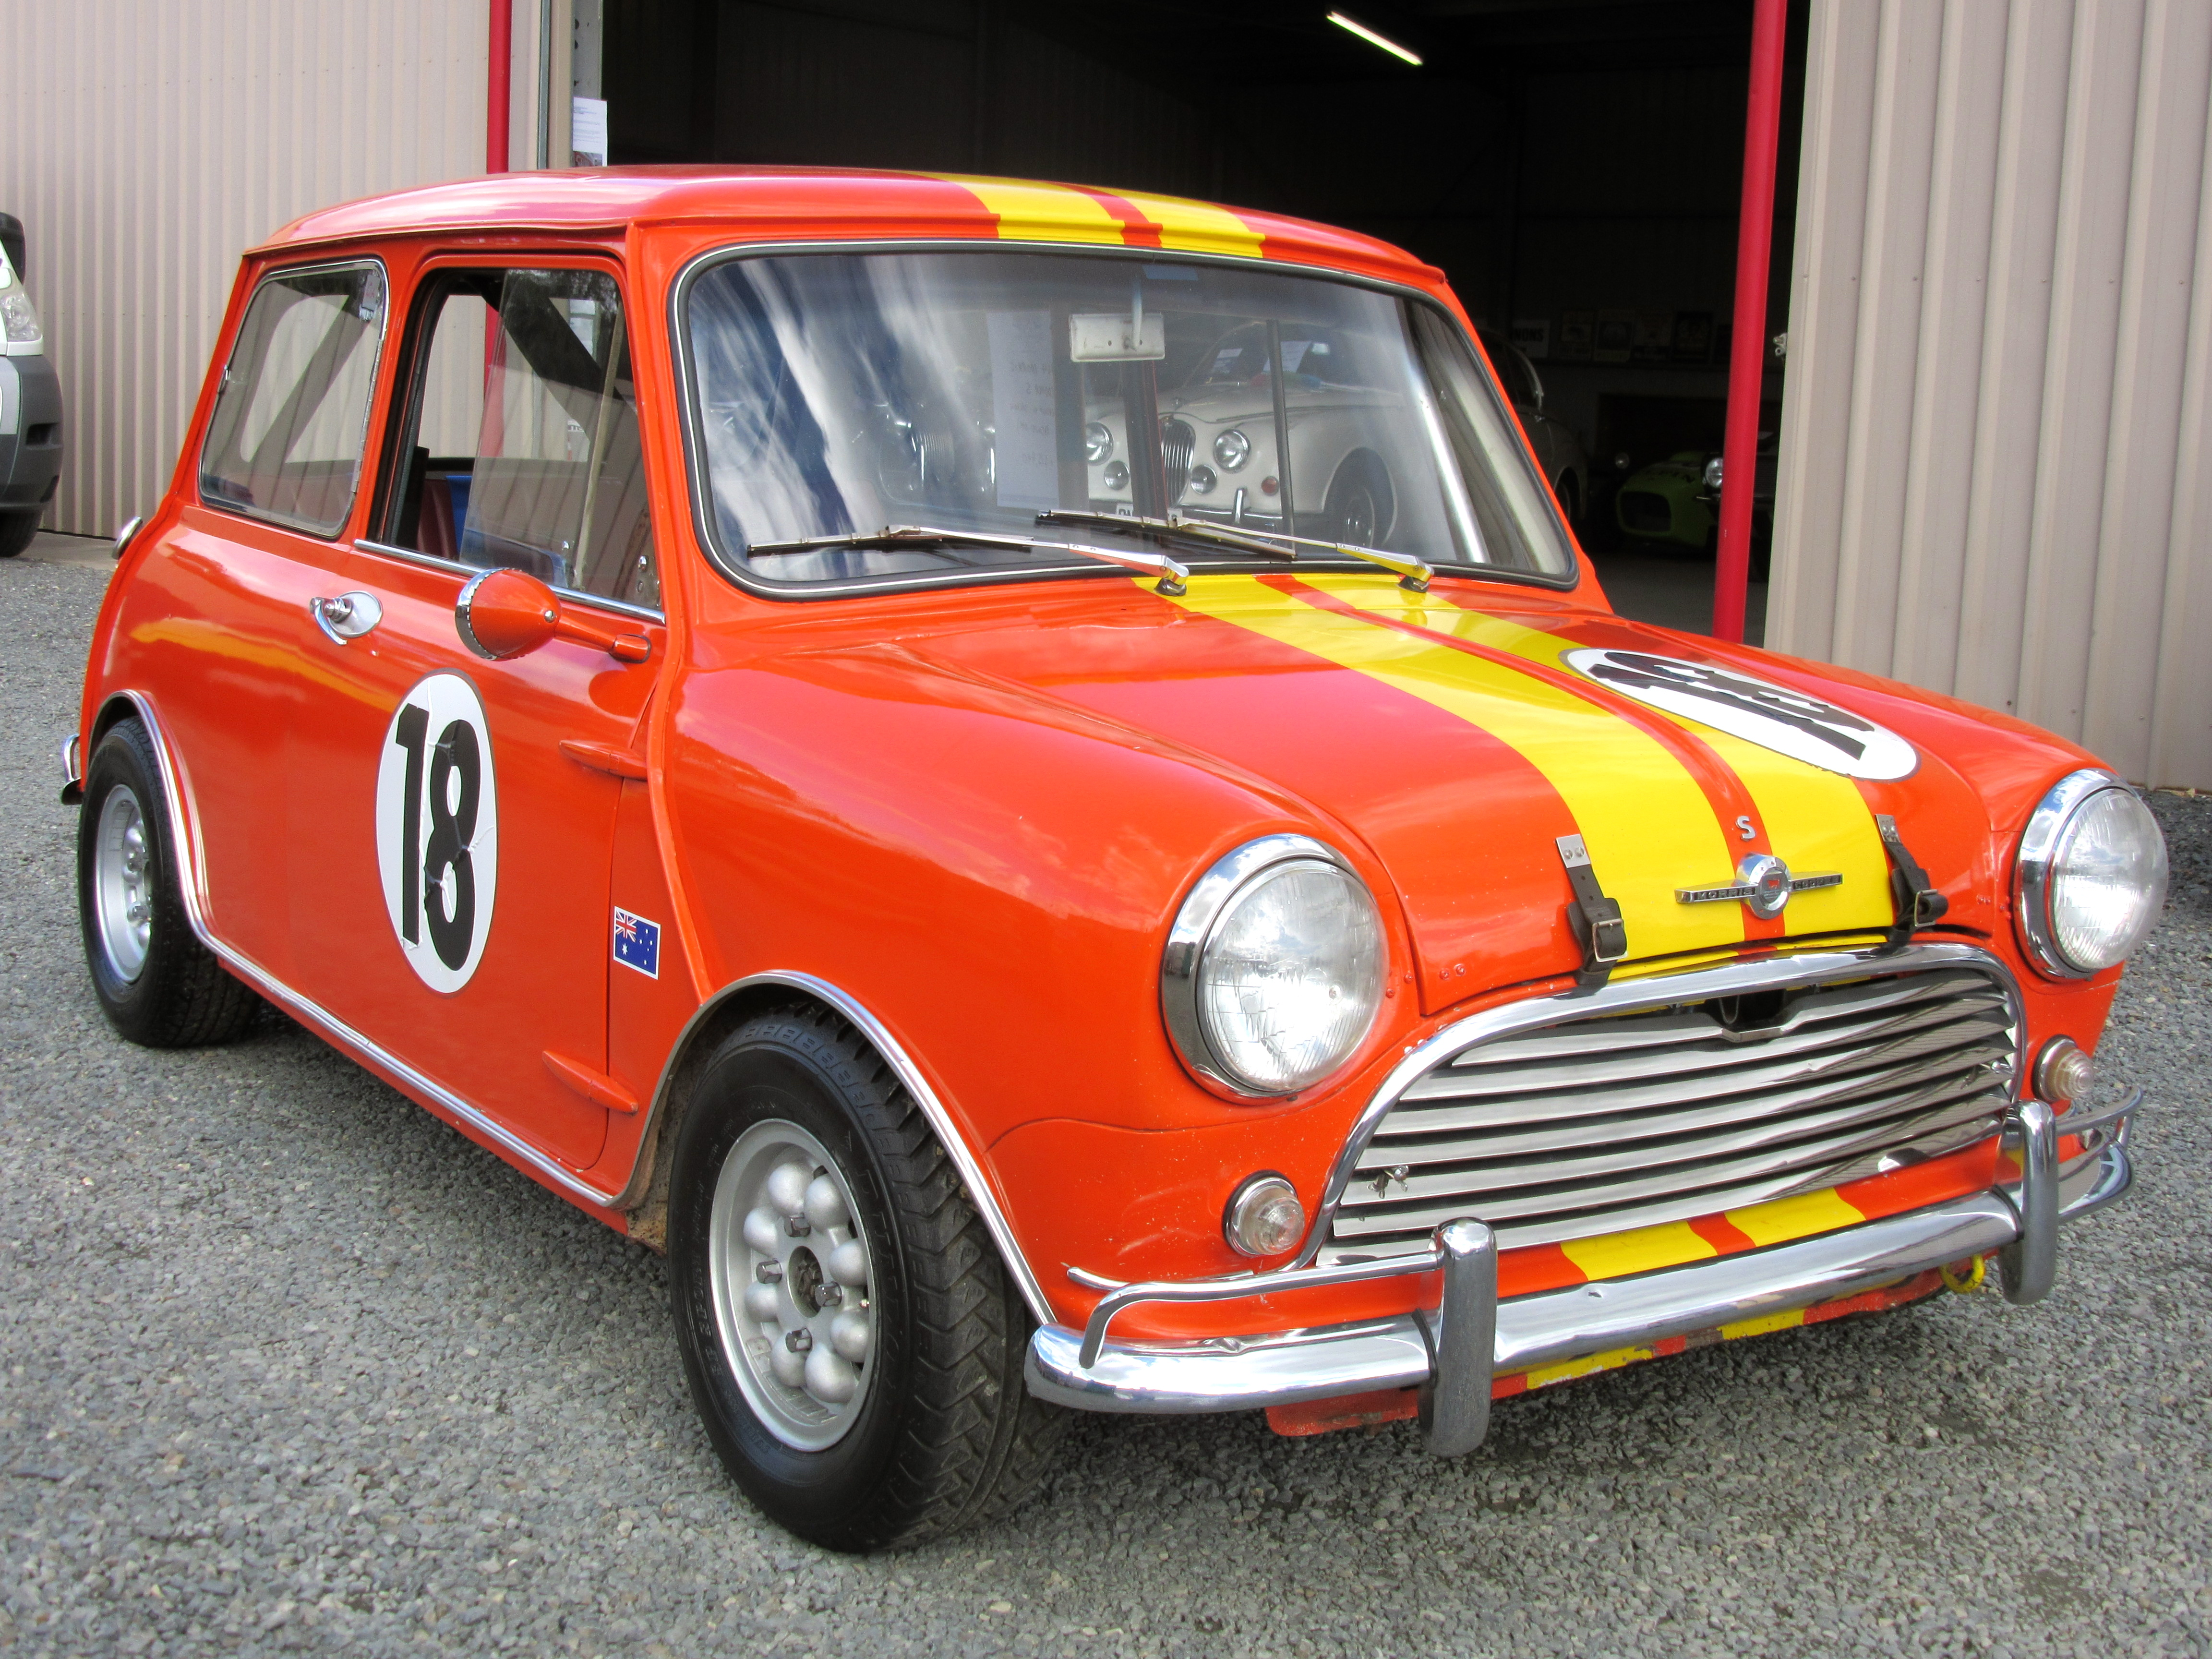 1964 Morris Cooper S Nb Historic Racing Car Collectable Classic